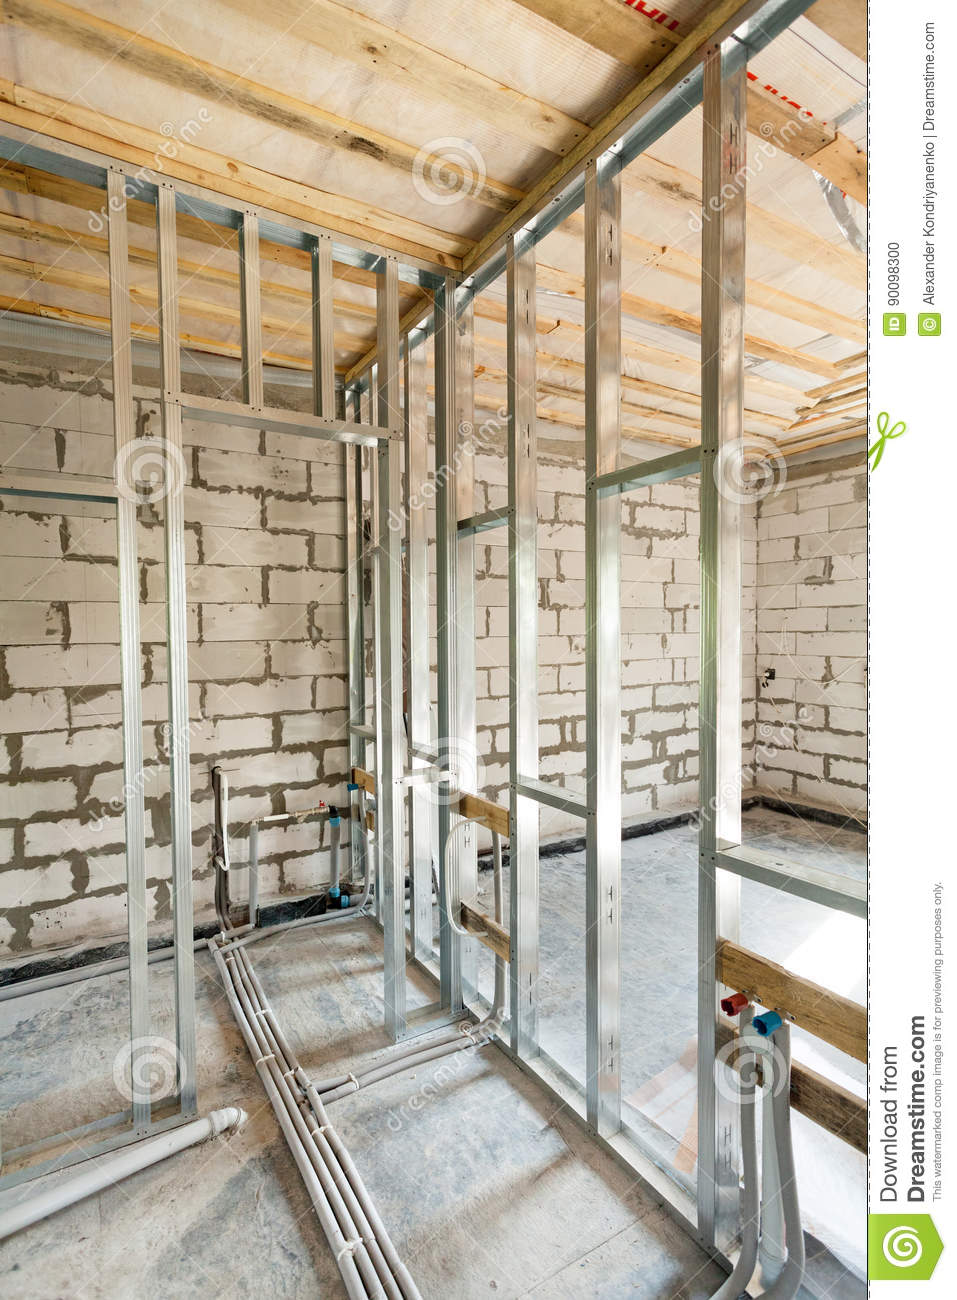 Metal profile frame for plasterboard walls and pipes with valves of a heating system in the house.